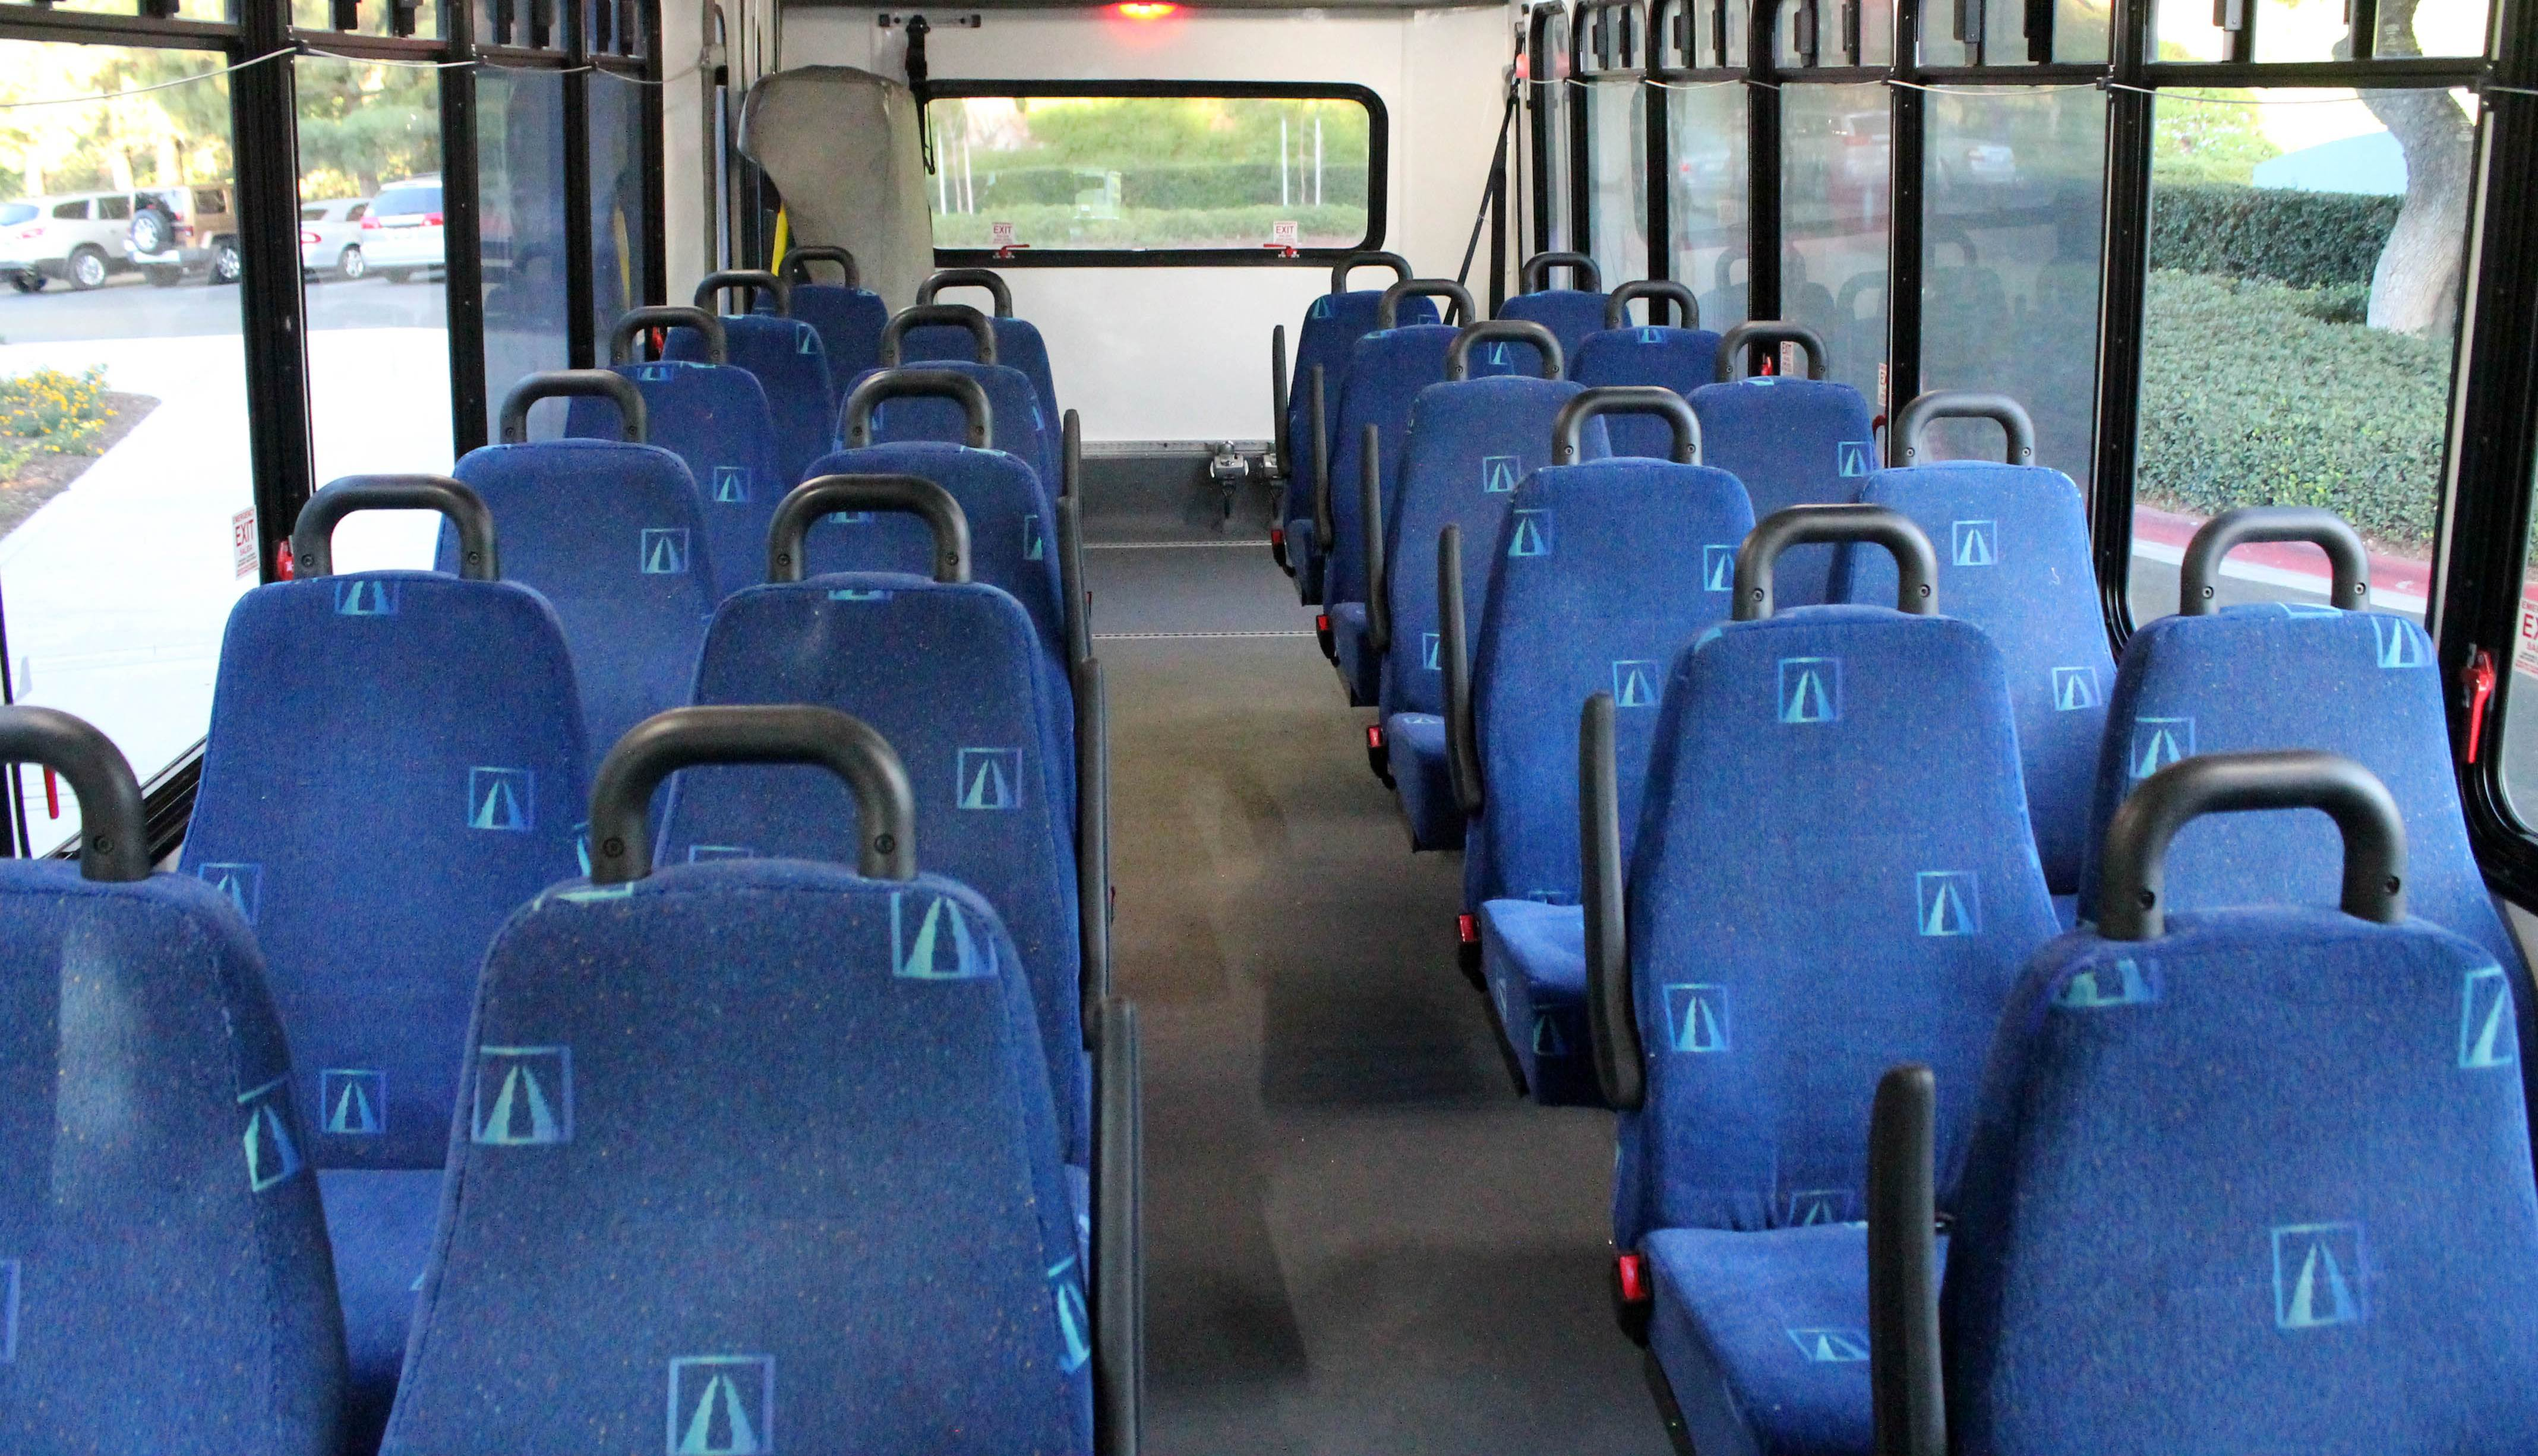 seats inside bus